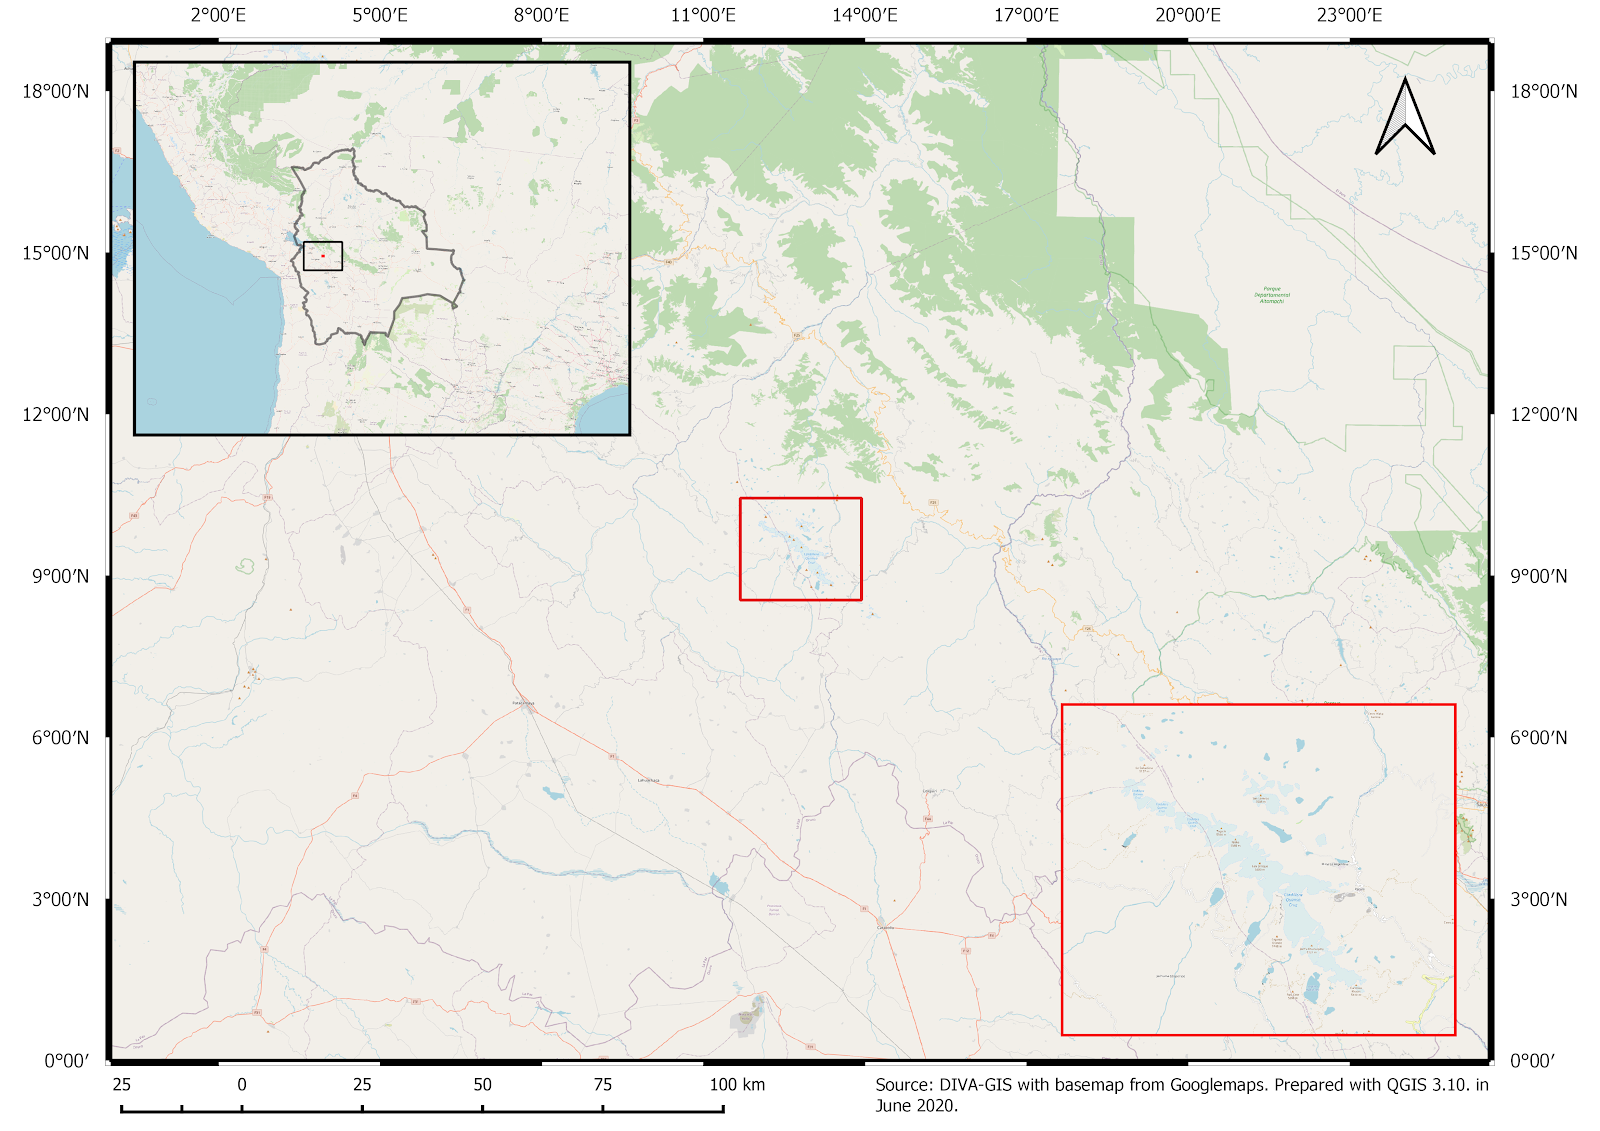 Figure 1: Mountain range of Cordillera Quimsa Cruz (in red square) located in Bolivia.